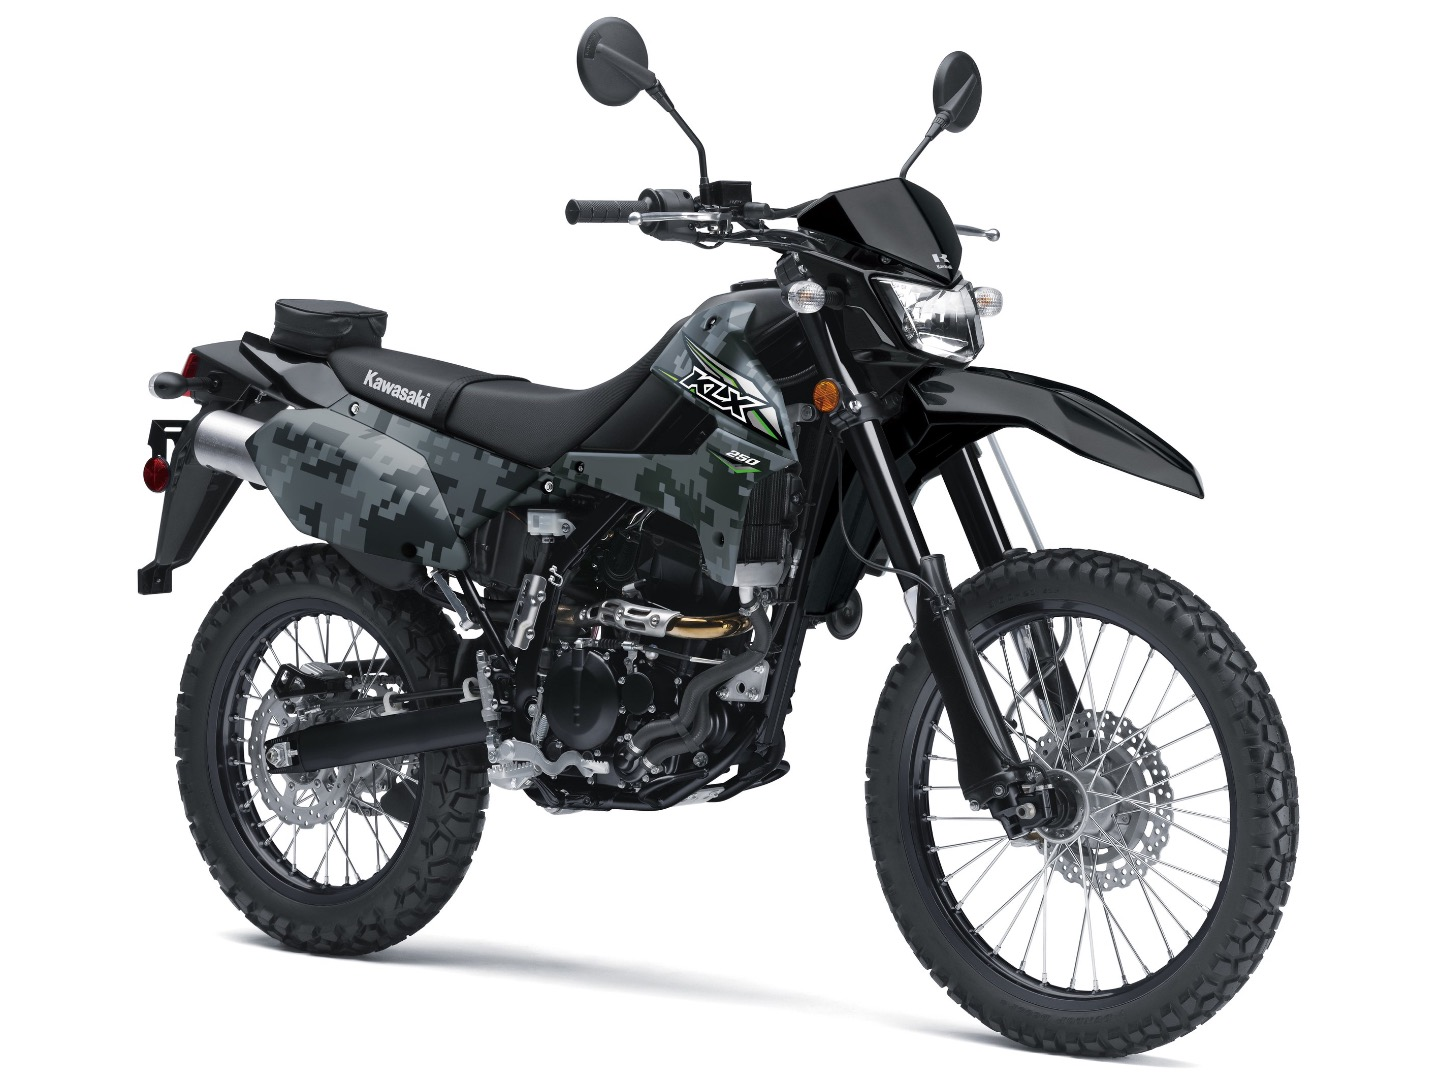 2018 kawasaki klx250 first look fast facts. Black Bedroom Furniture Sets. Home Design Ideas